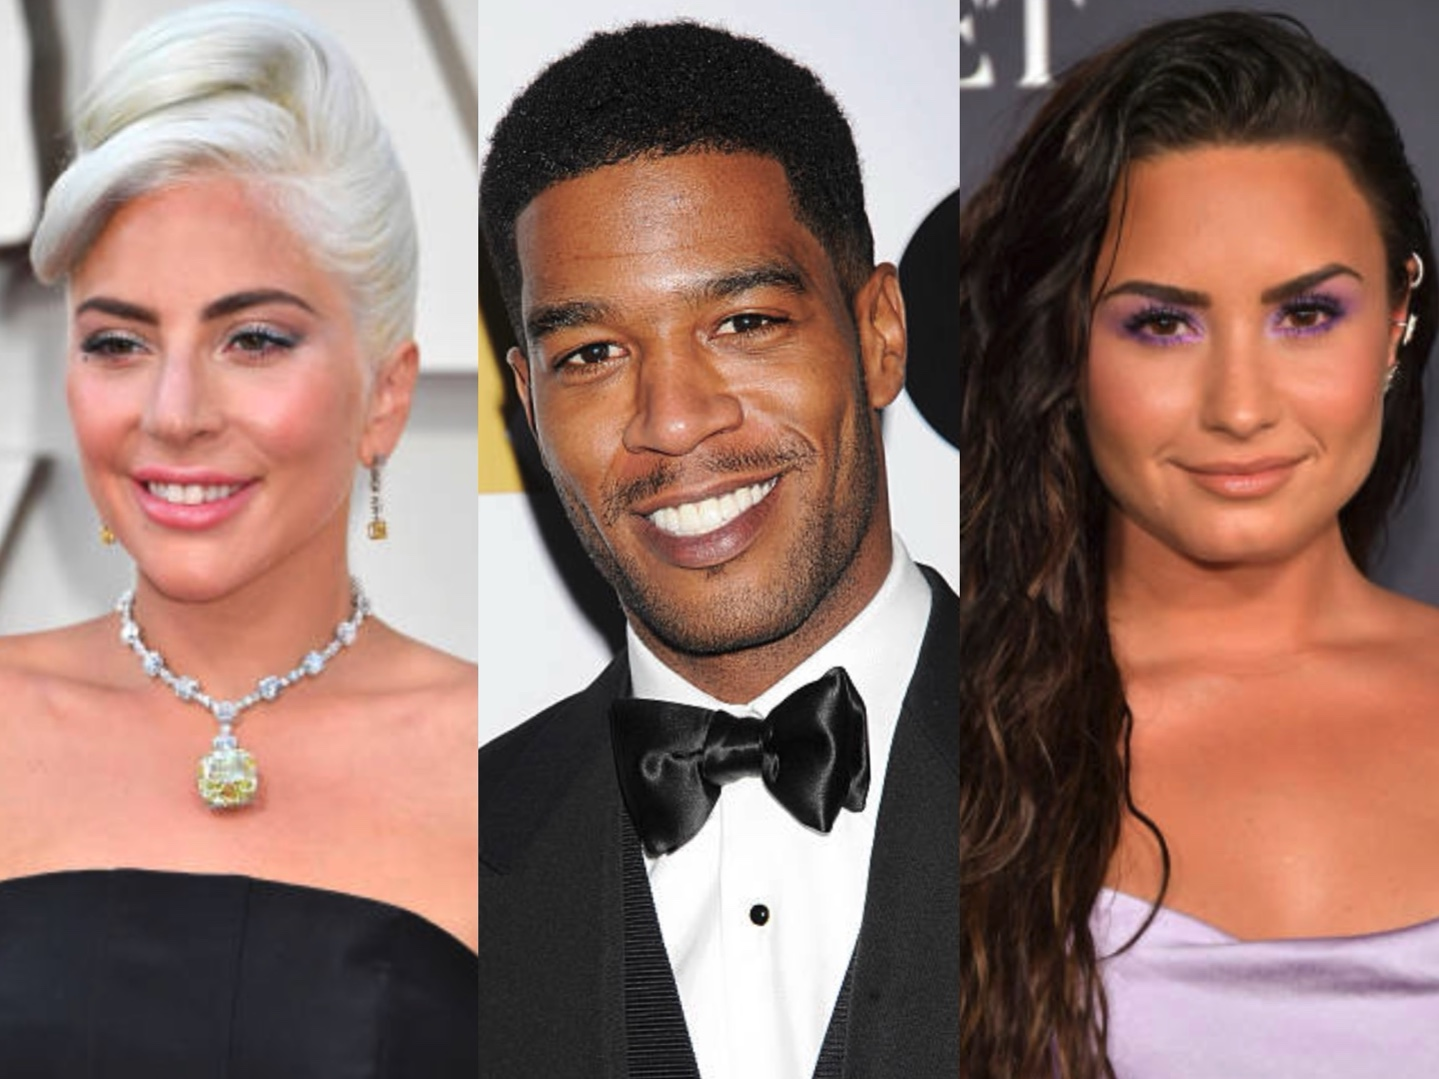 Celebrities who have revealed their mental health struggles